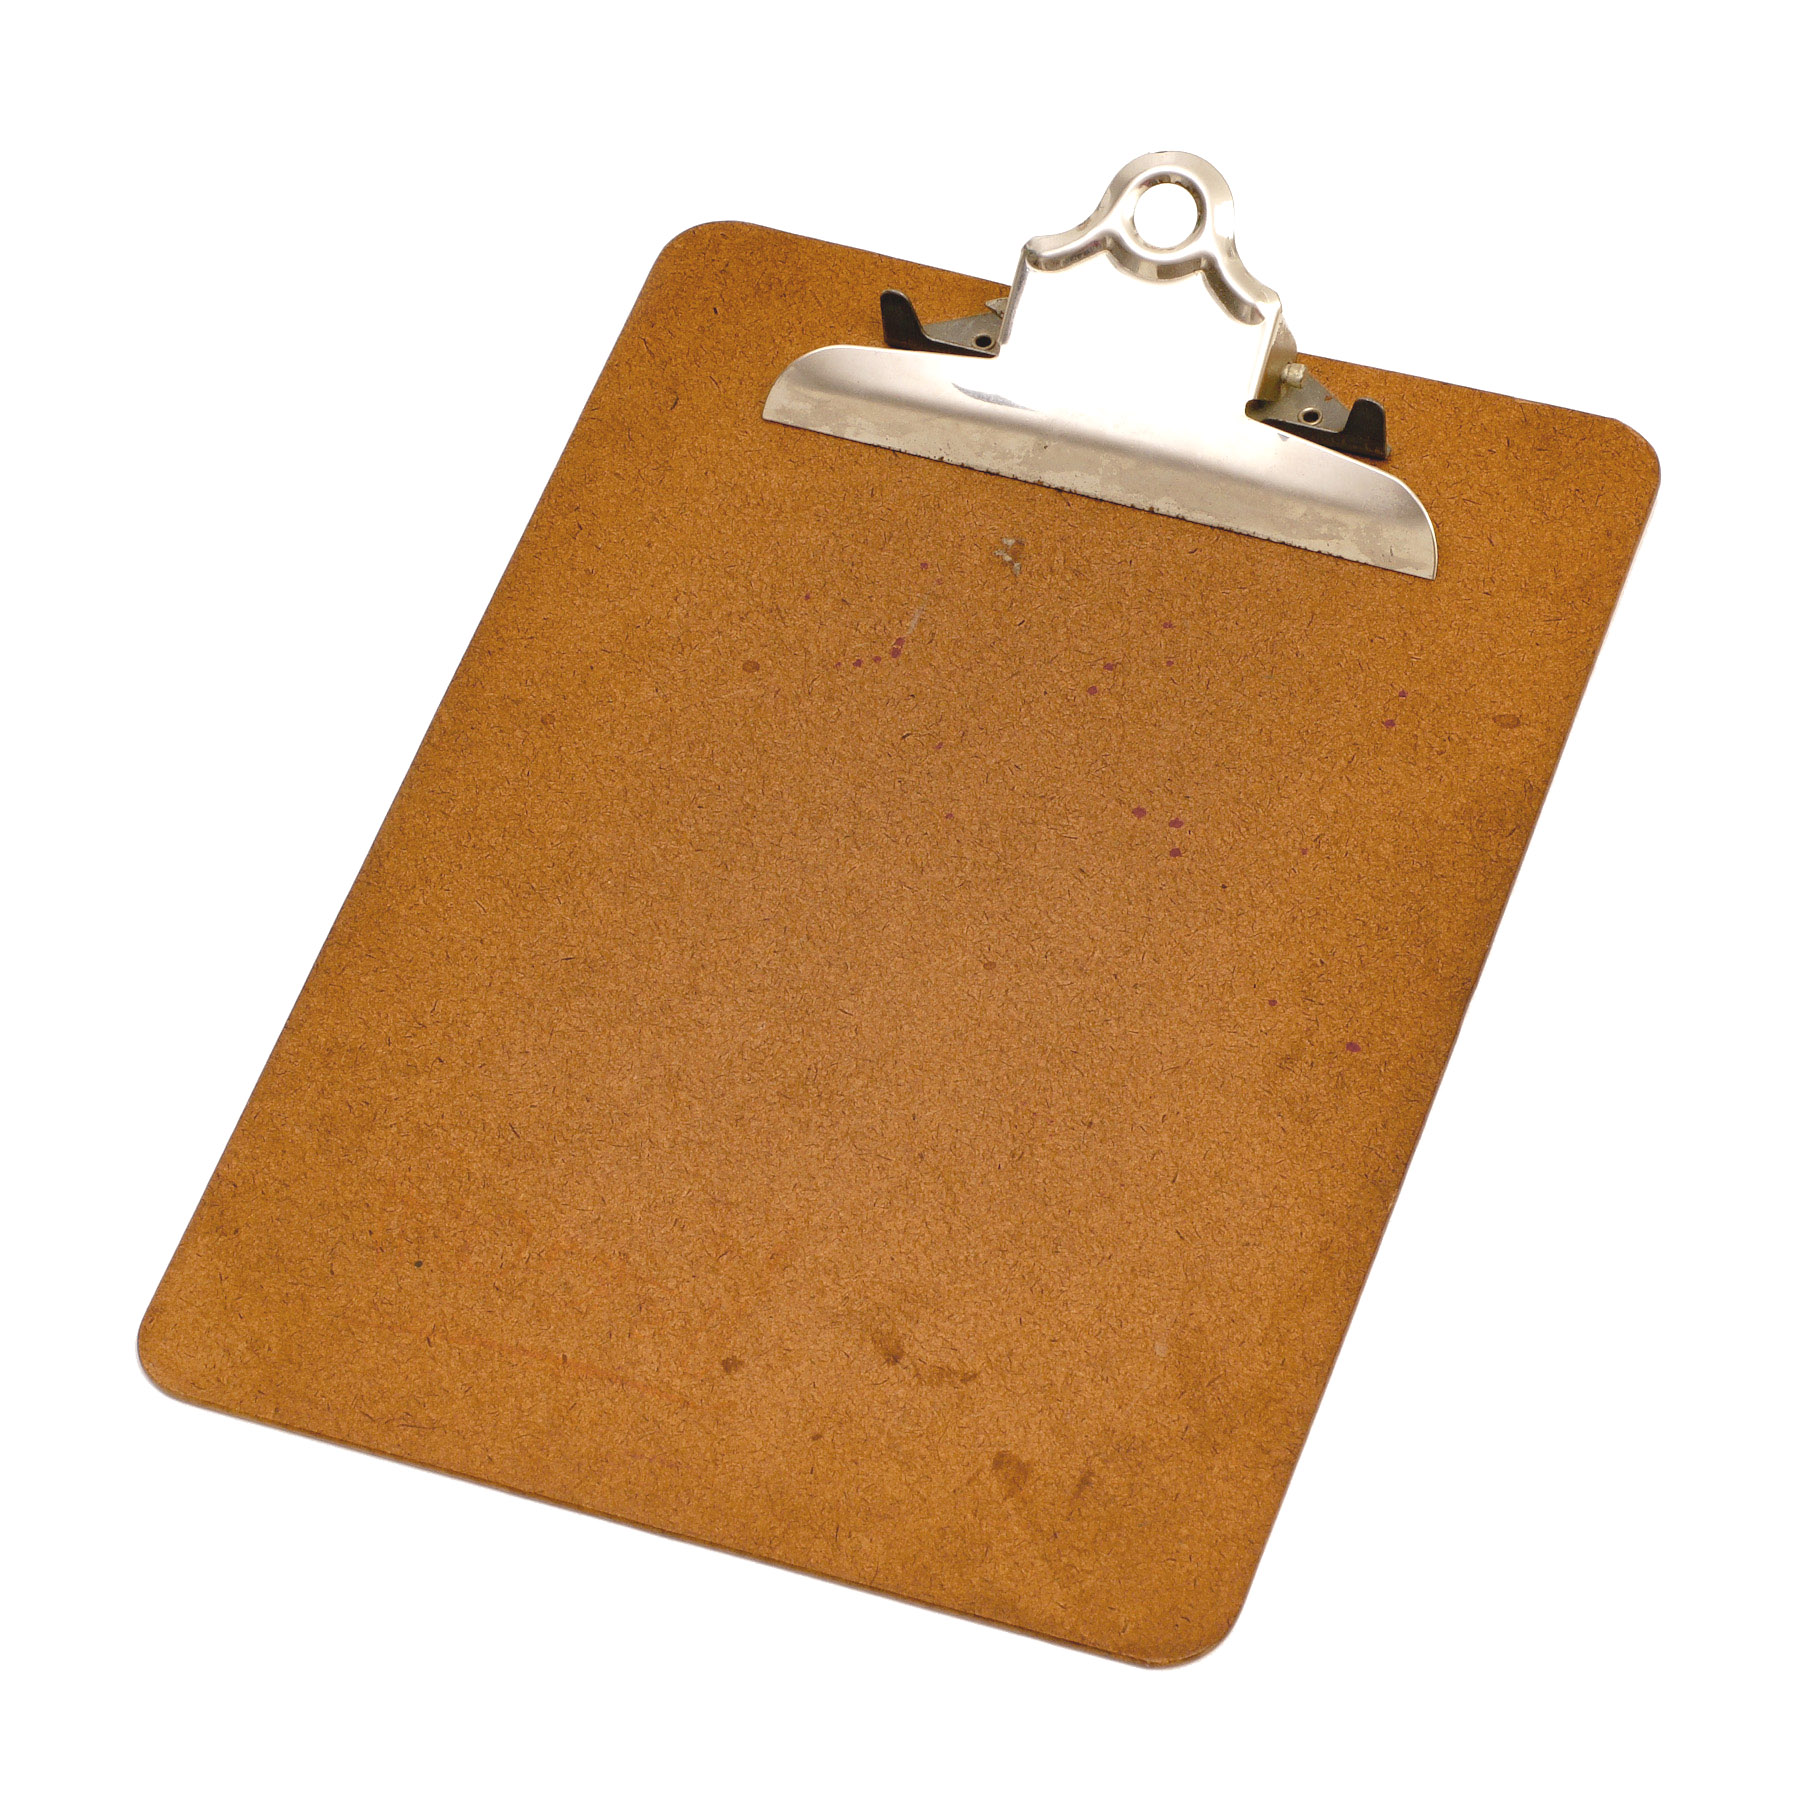 clipboard_image